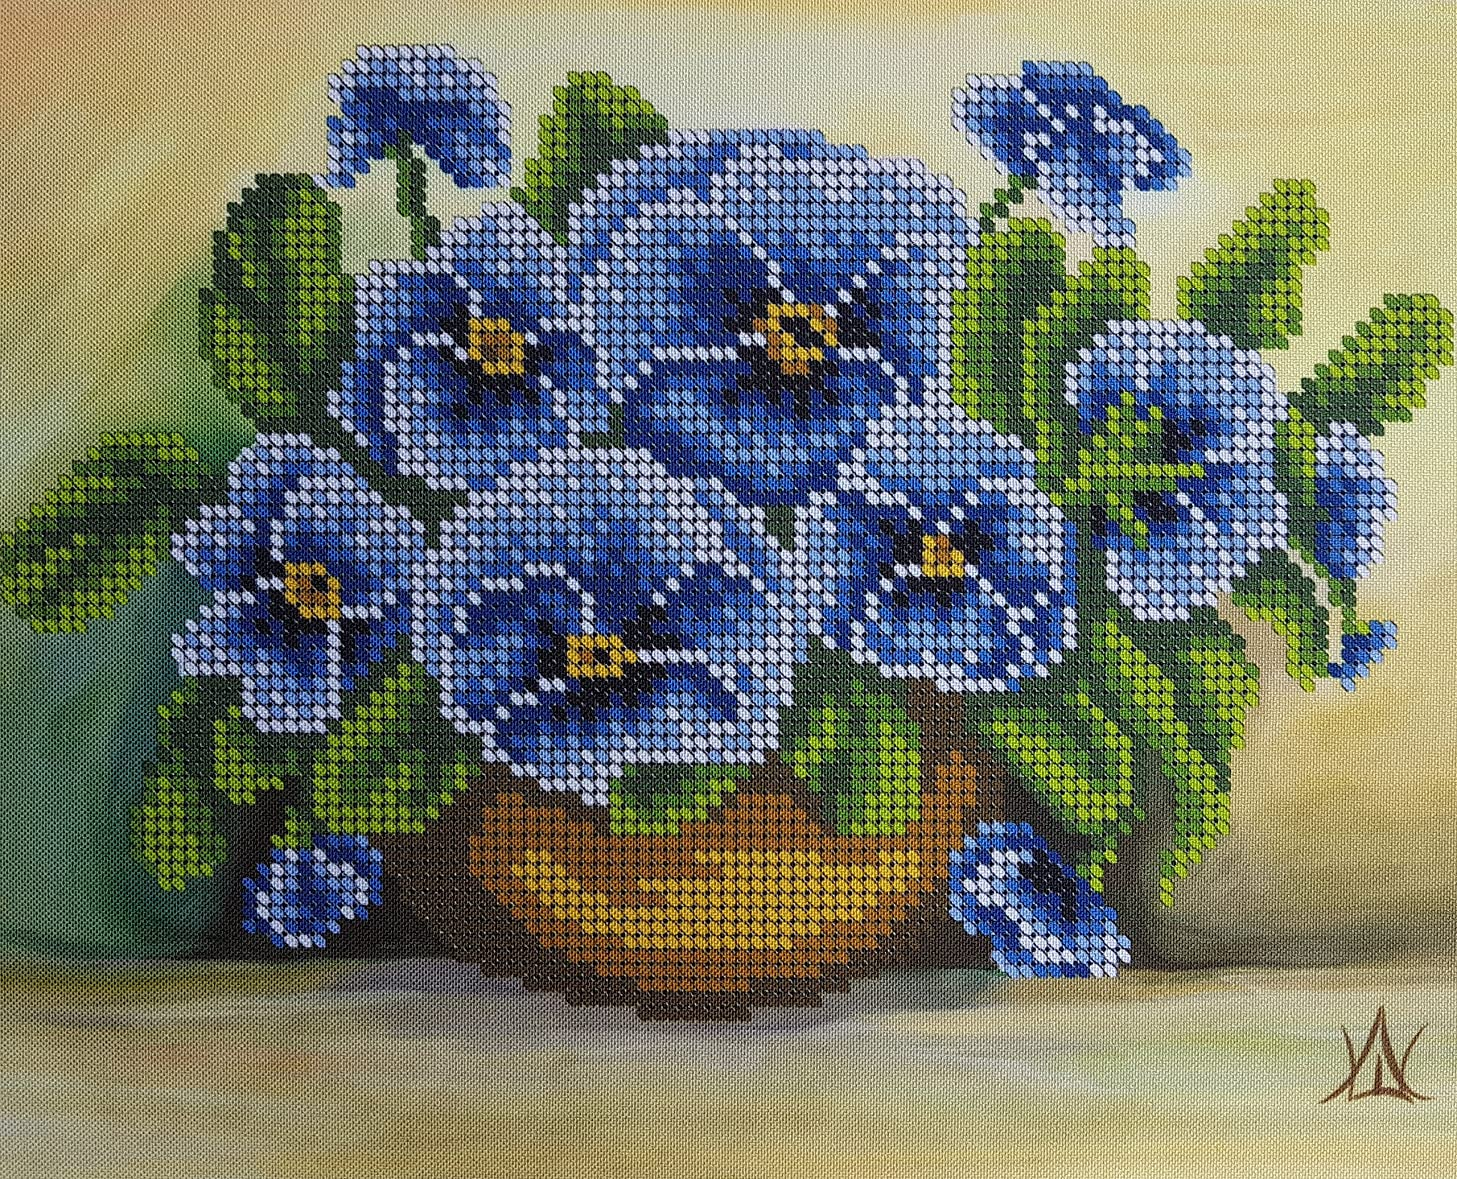 ForgetMeNot Bead Embroidery kit Floral 3D Needlepoint Tapestry Handcraft kit Blue Nosegay Beaded Cross Stitch Pattern Seed Beads Perle